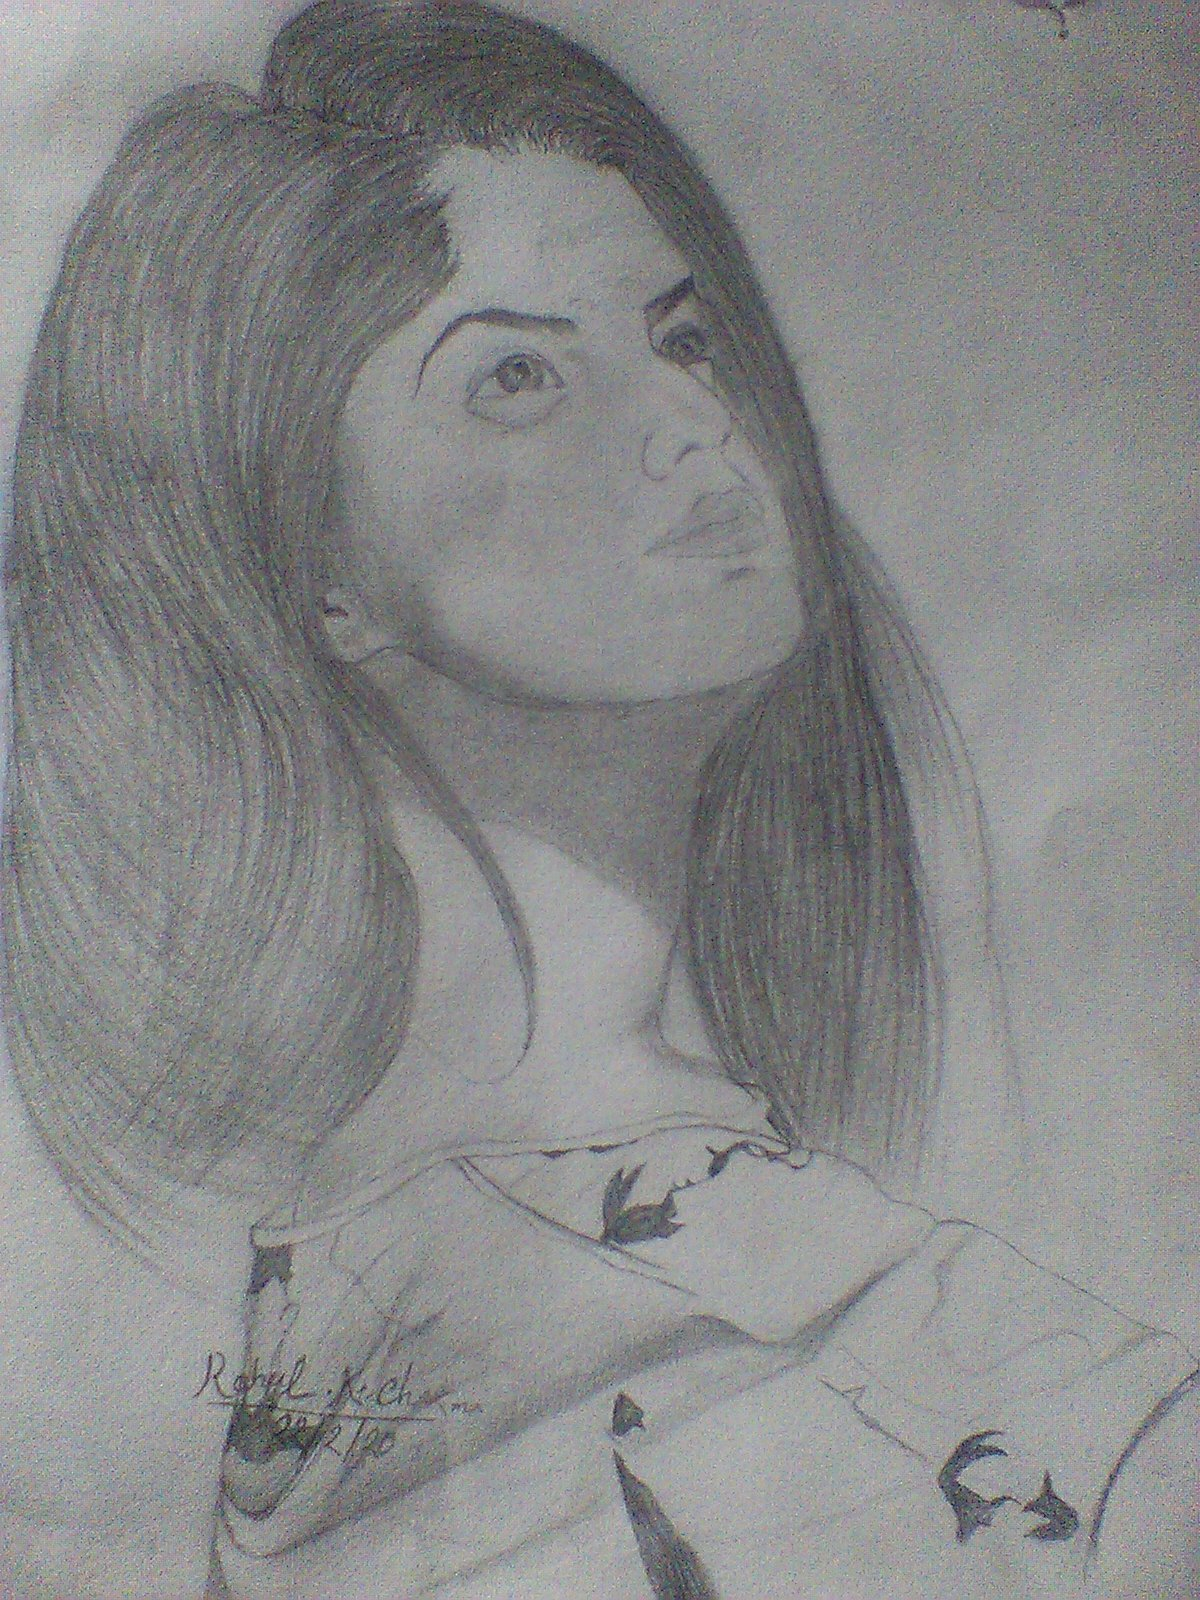 Arishfa Khan Pencil Sketch